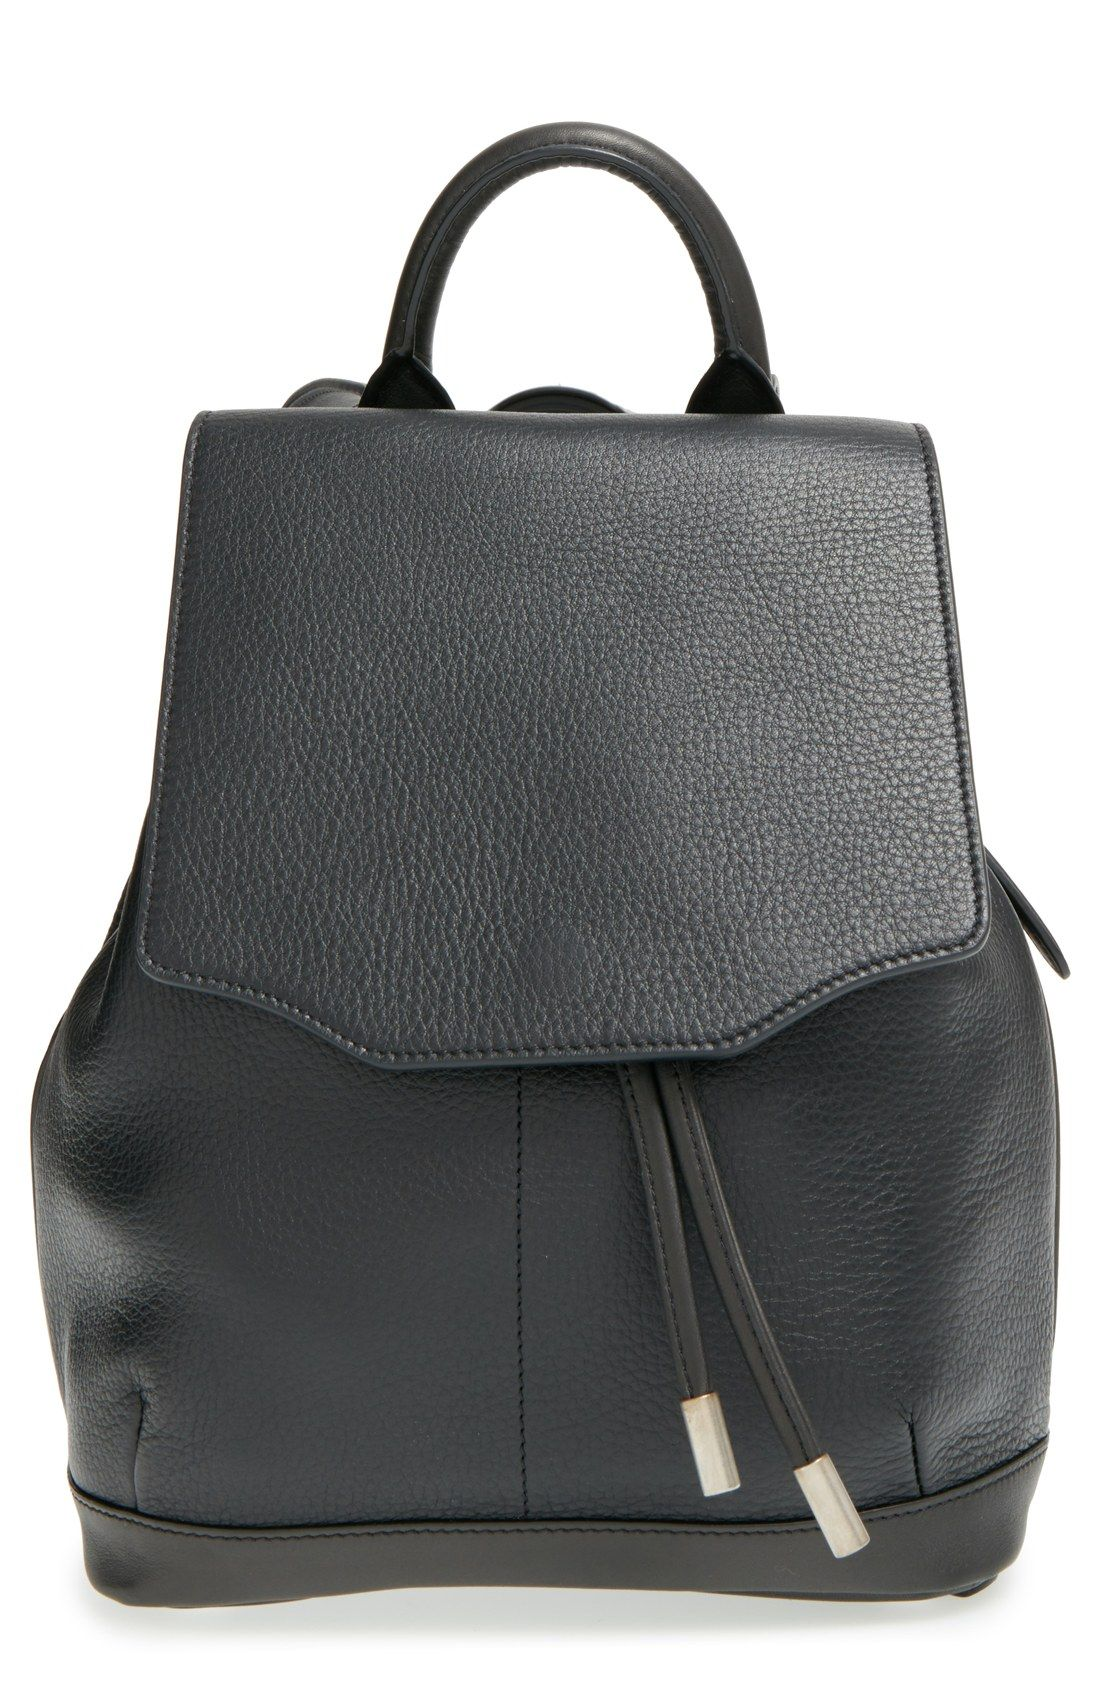 56aae82b07eb Elevating the street-style game with this rag   bone bucket bag-inspired  backpack.